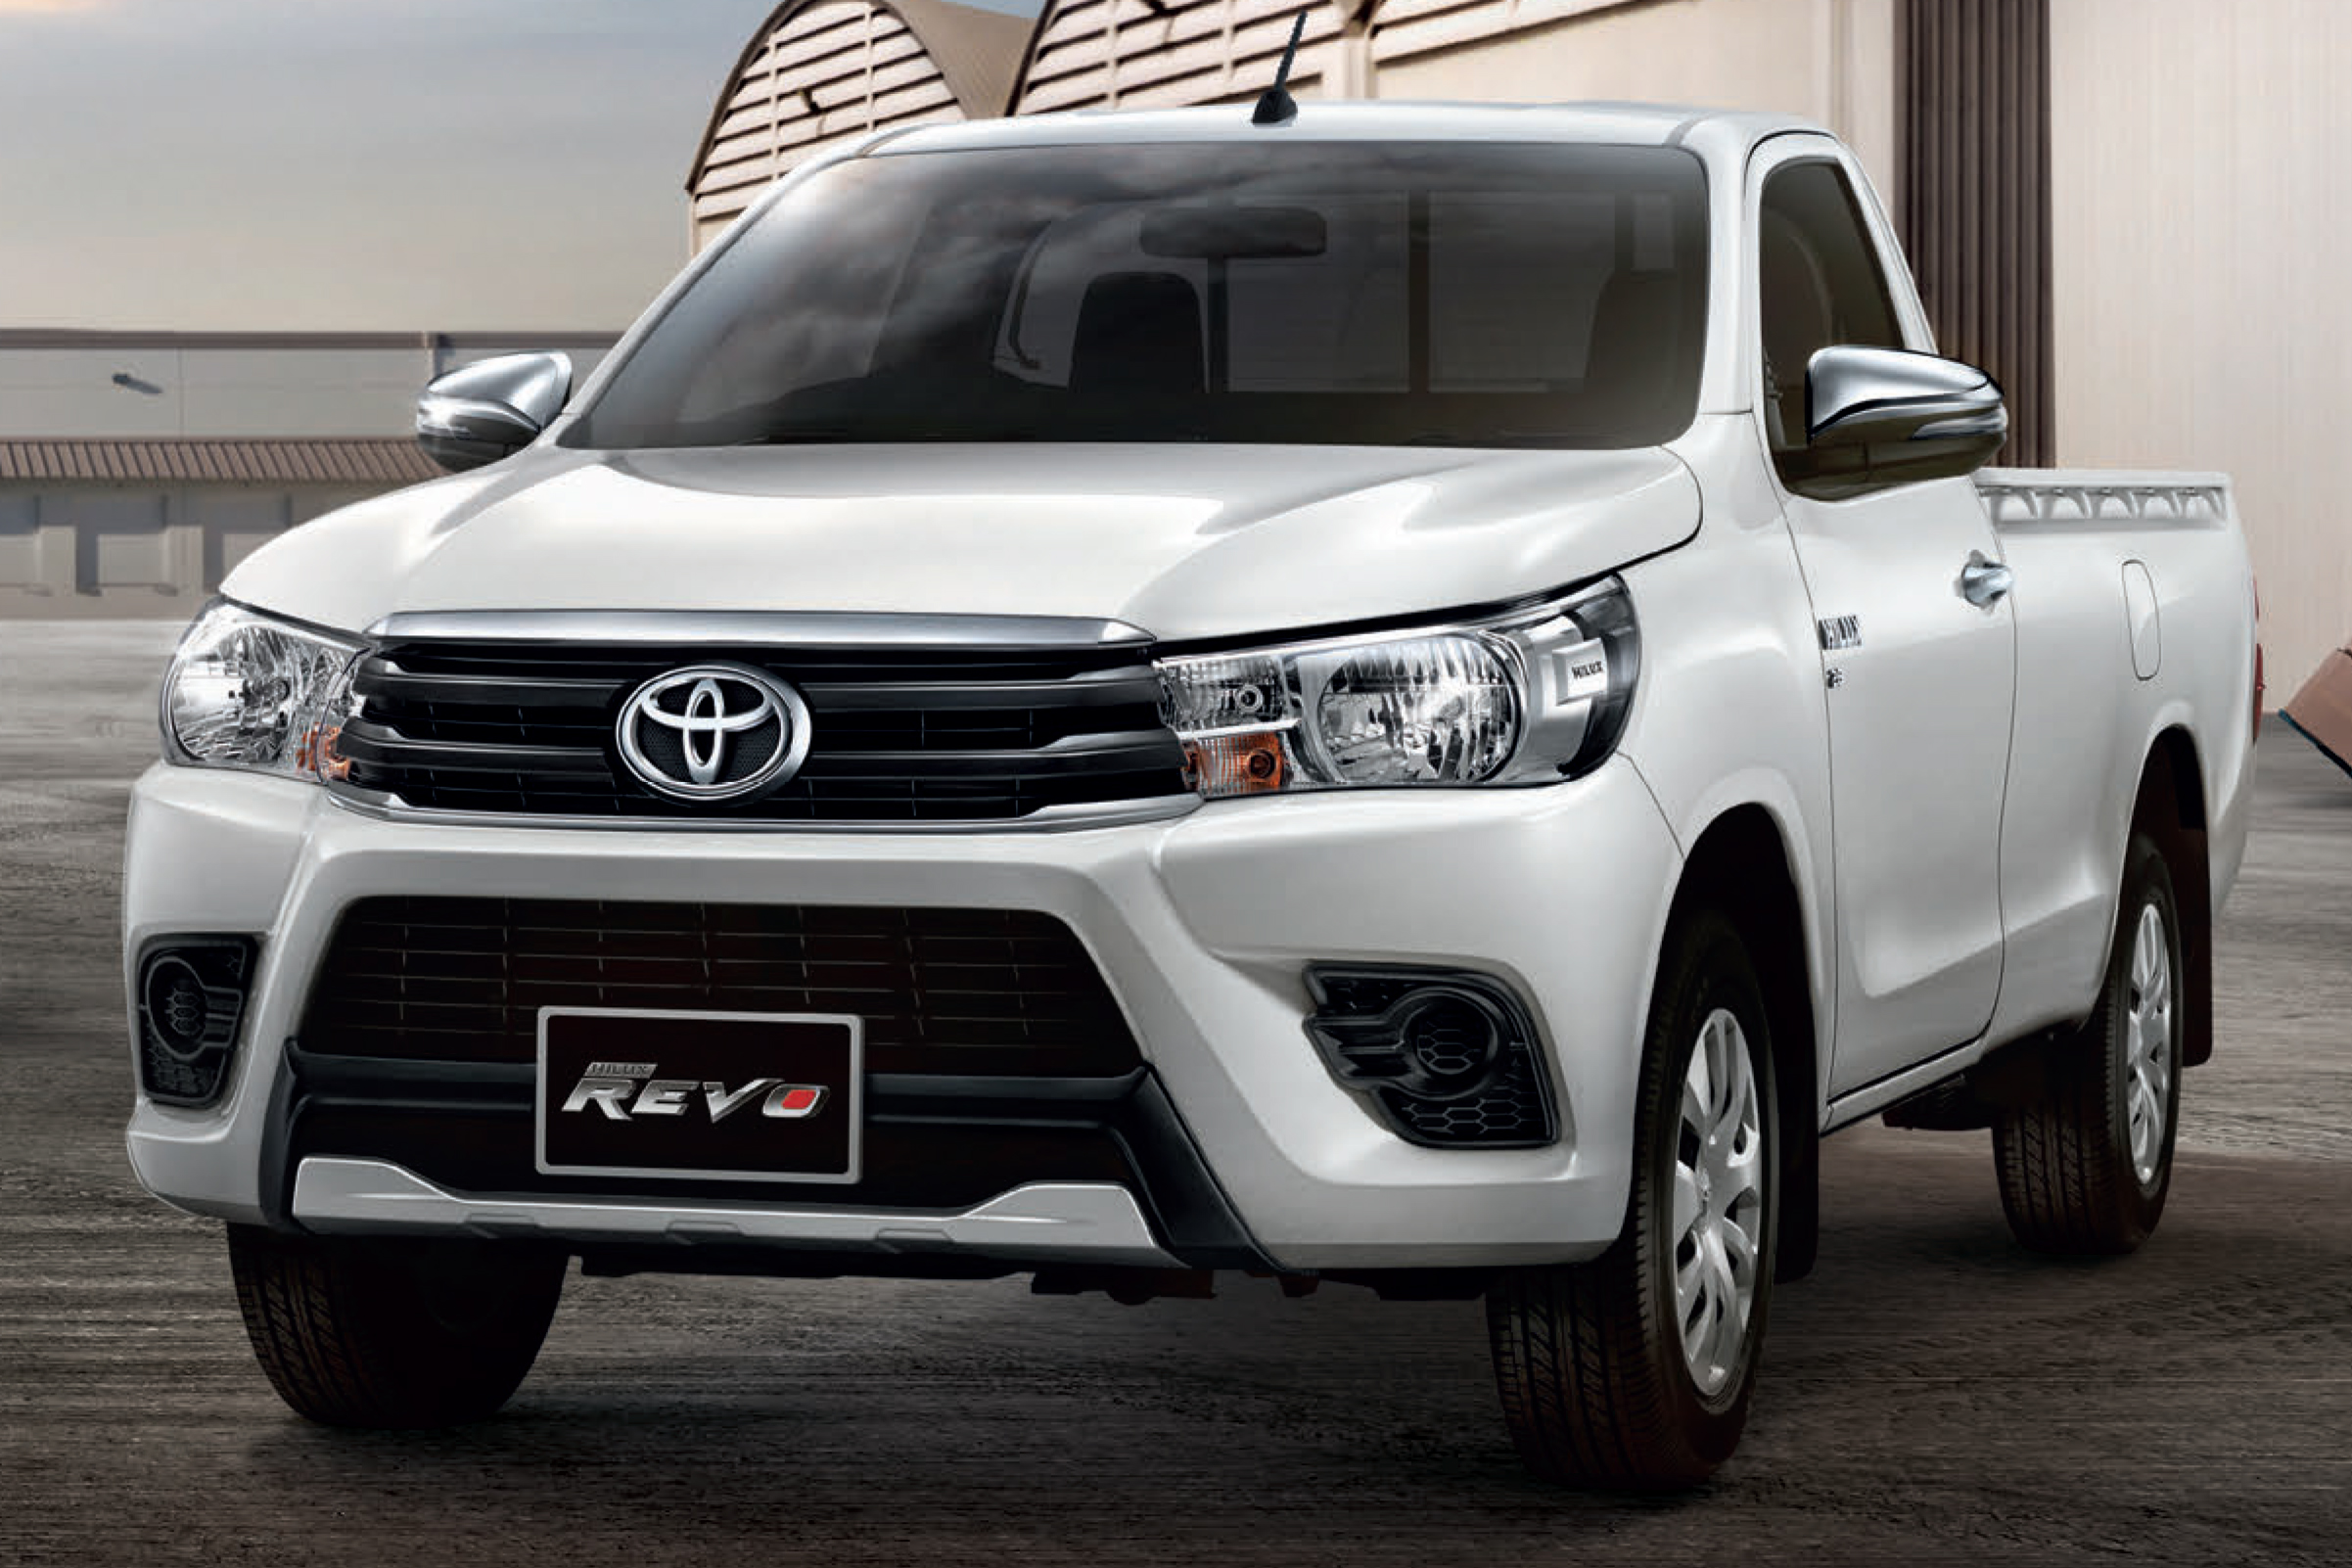 2018 Toyota Hilux facelift gets new Tacoma-style face Paul ...